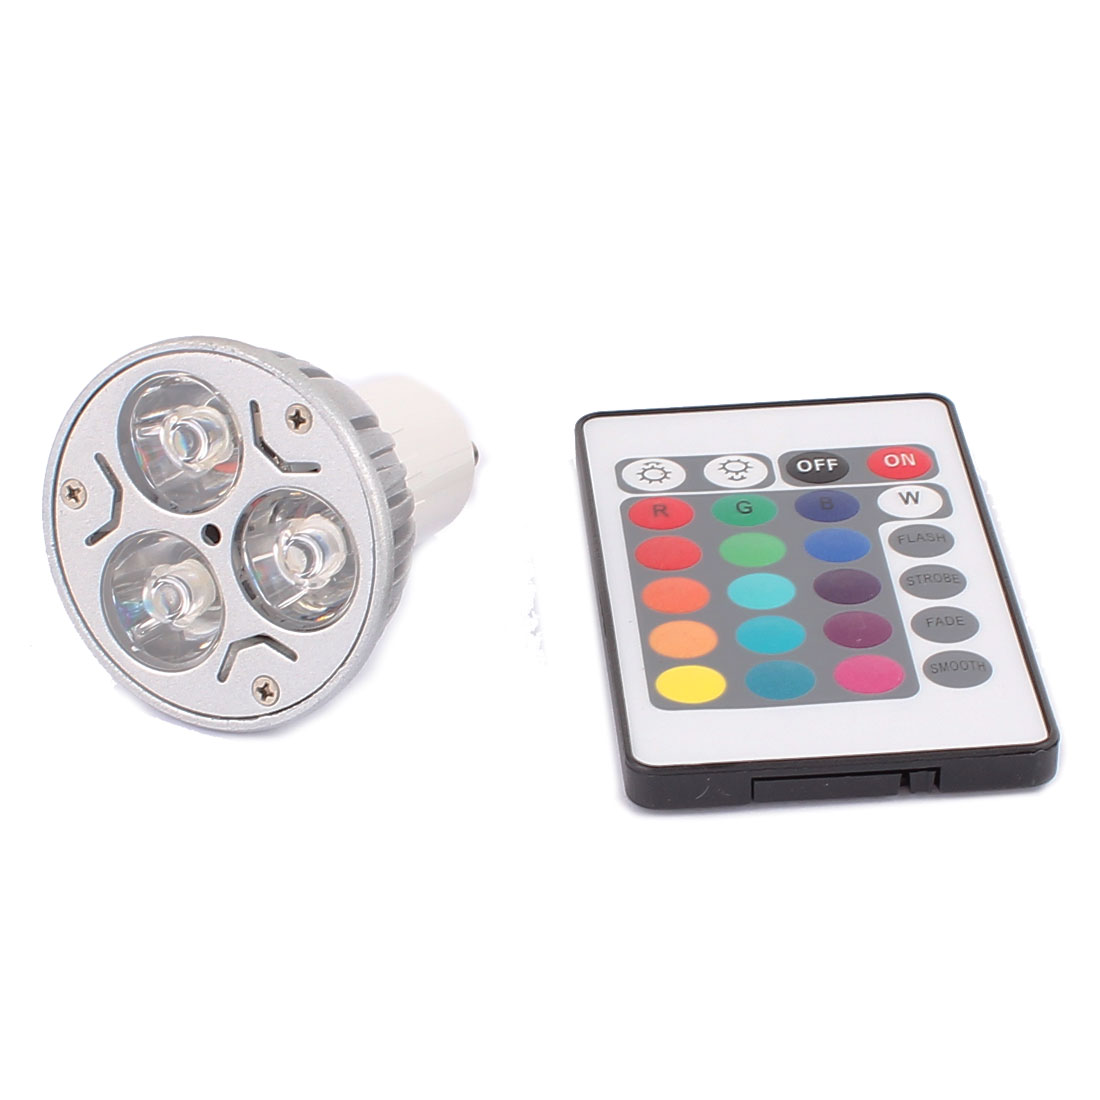 GU10 Adapter Decoration Spotlight Light RGB LED Lamp Bulb 3W AC 85V-265V w Remote Controller